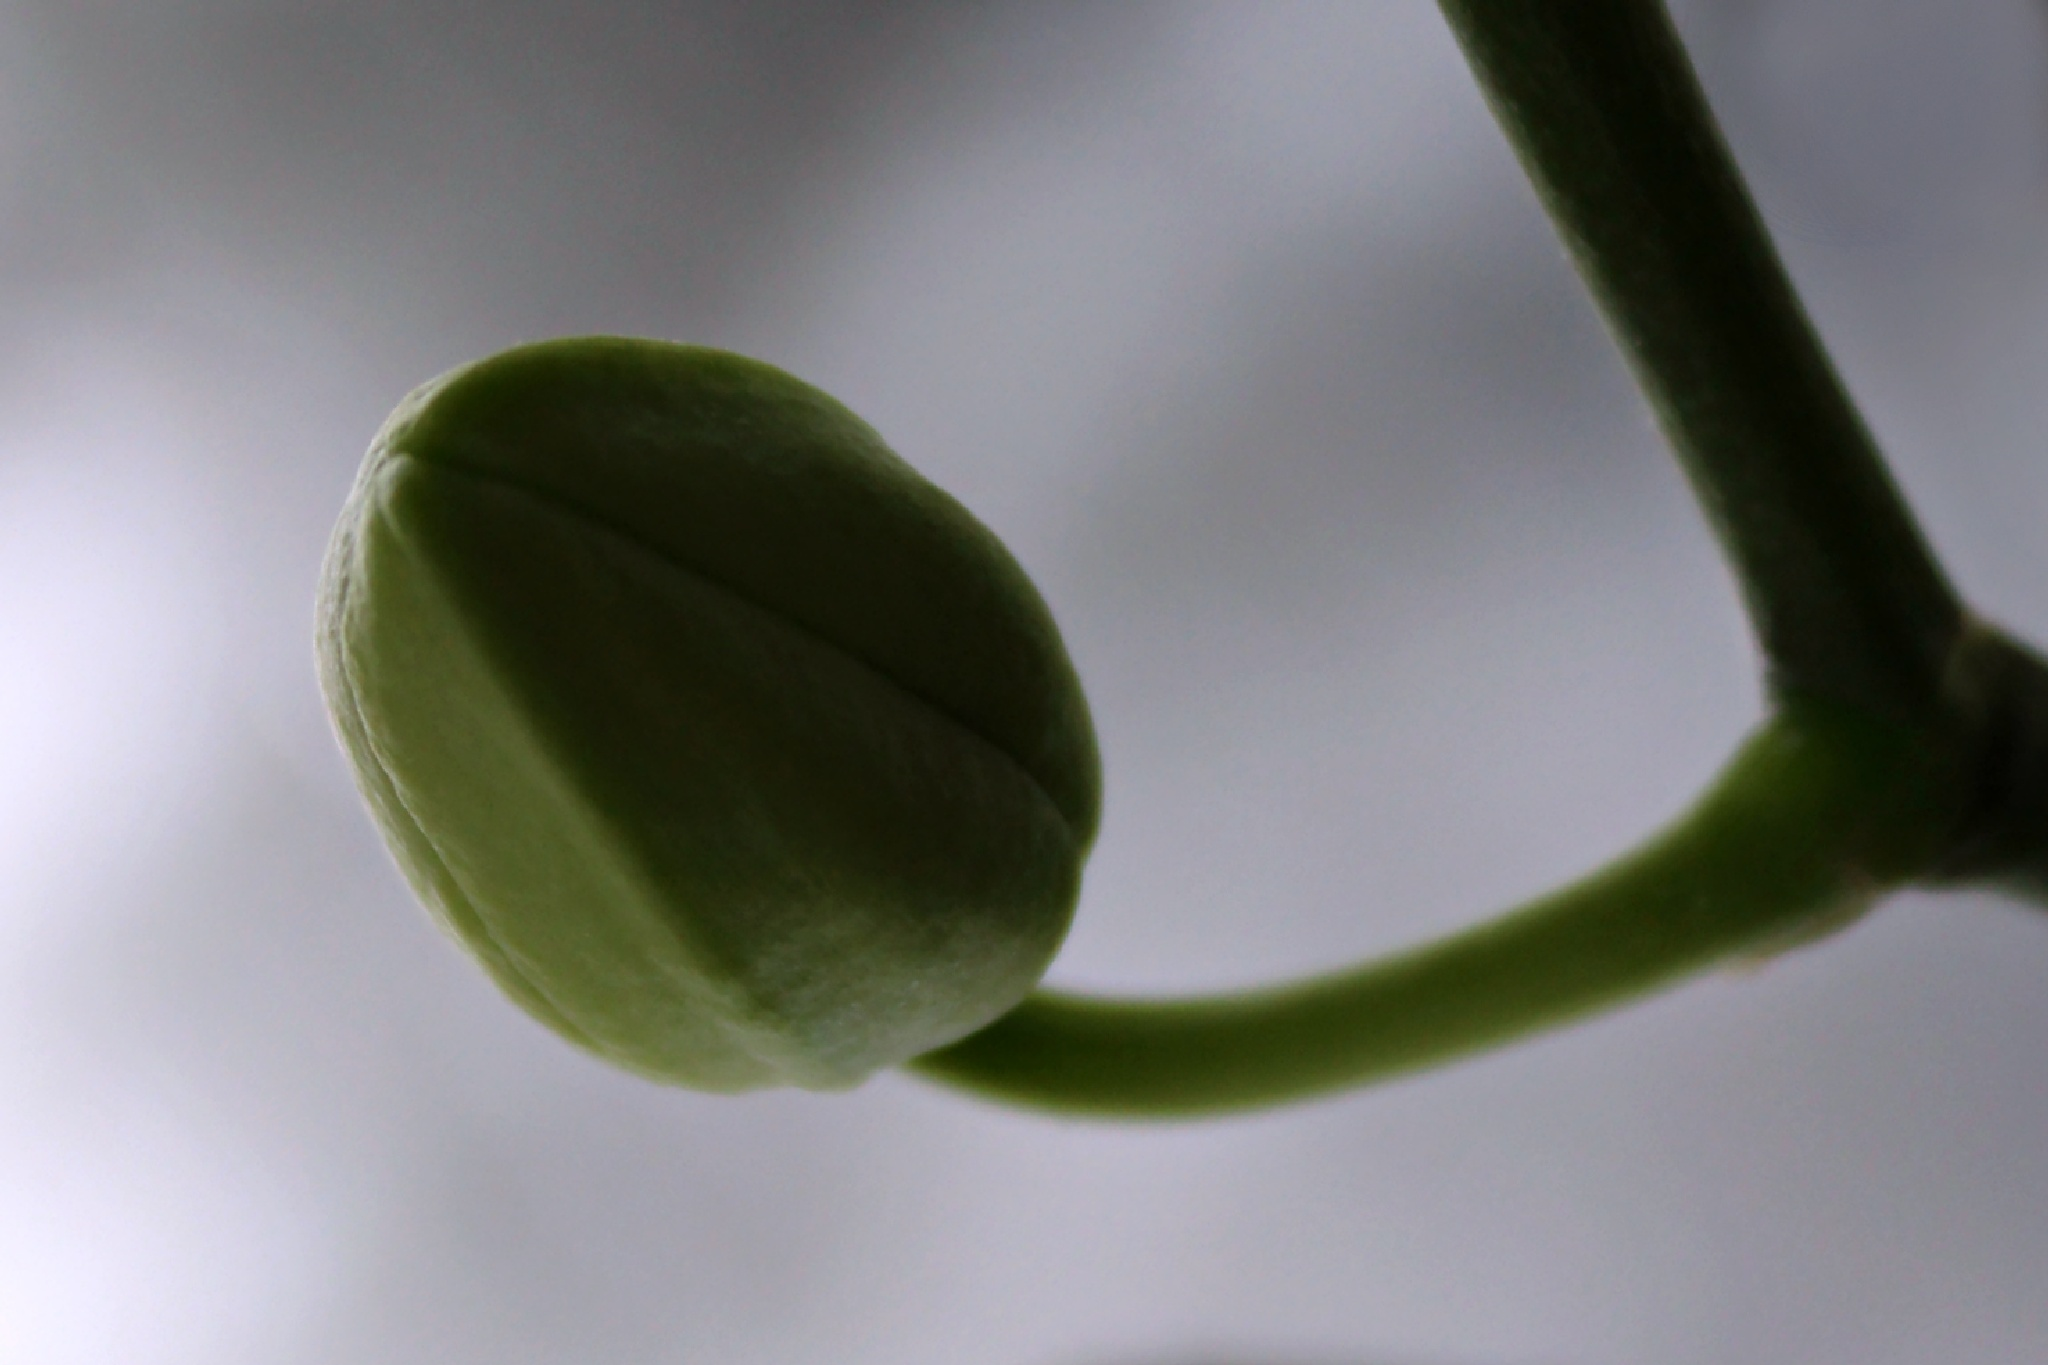 My orchid will bloom soon by Ewa